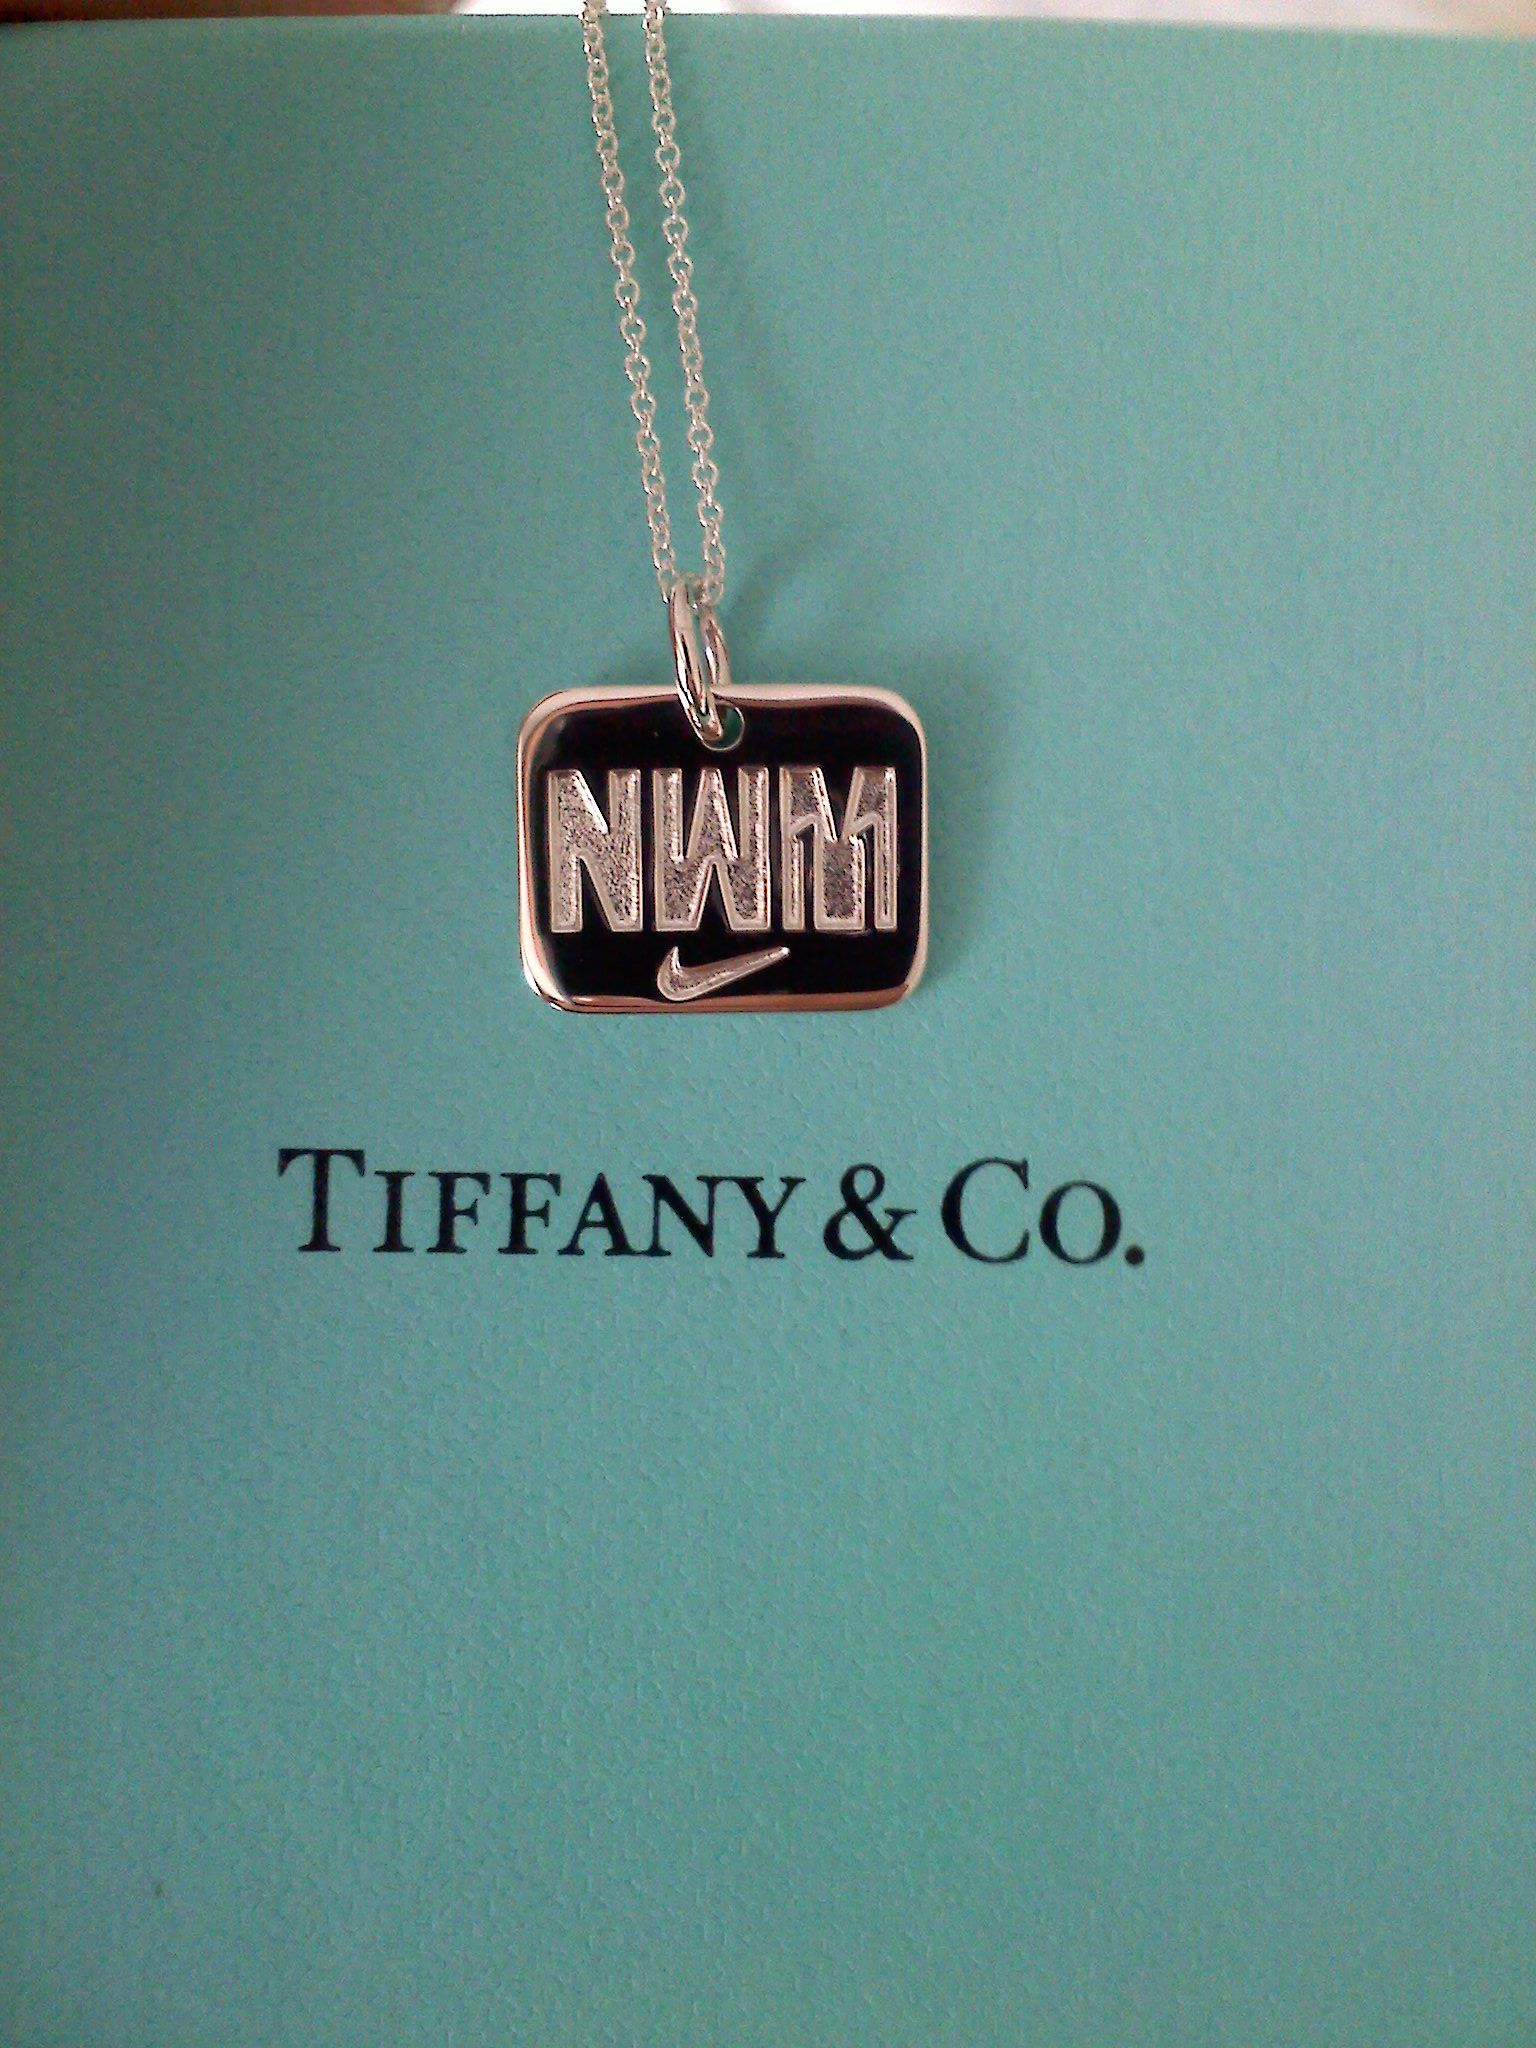 6434f59f7a8d NIke Women s Half Marathon gives you a Tiffany and Co. necklace at the  finish line. I could run for jewelry. haha